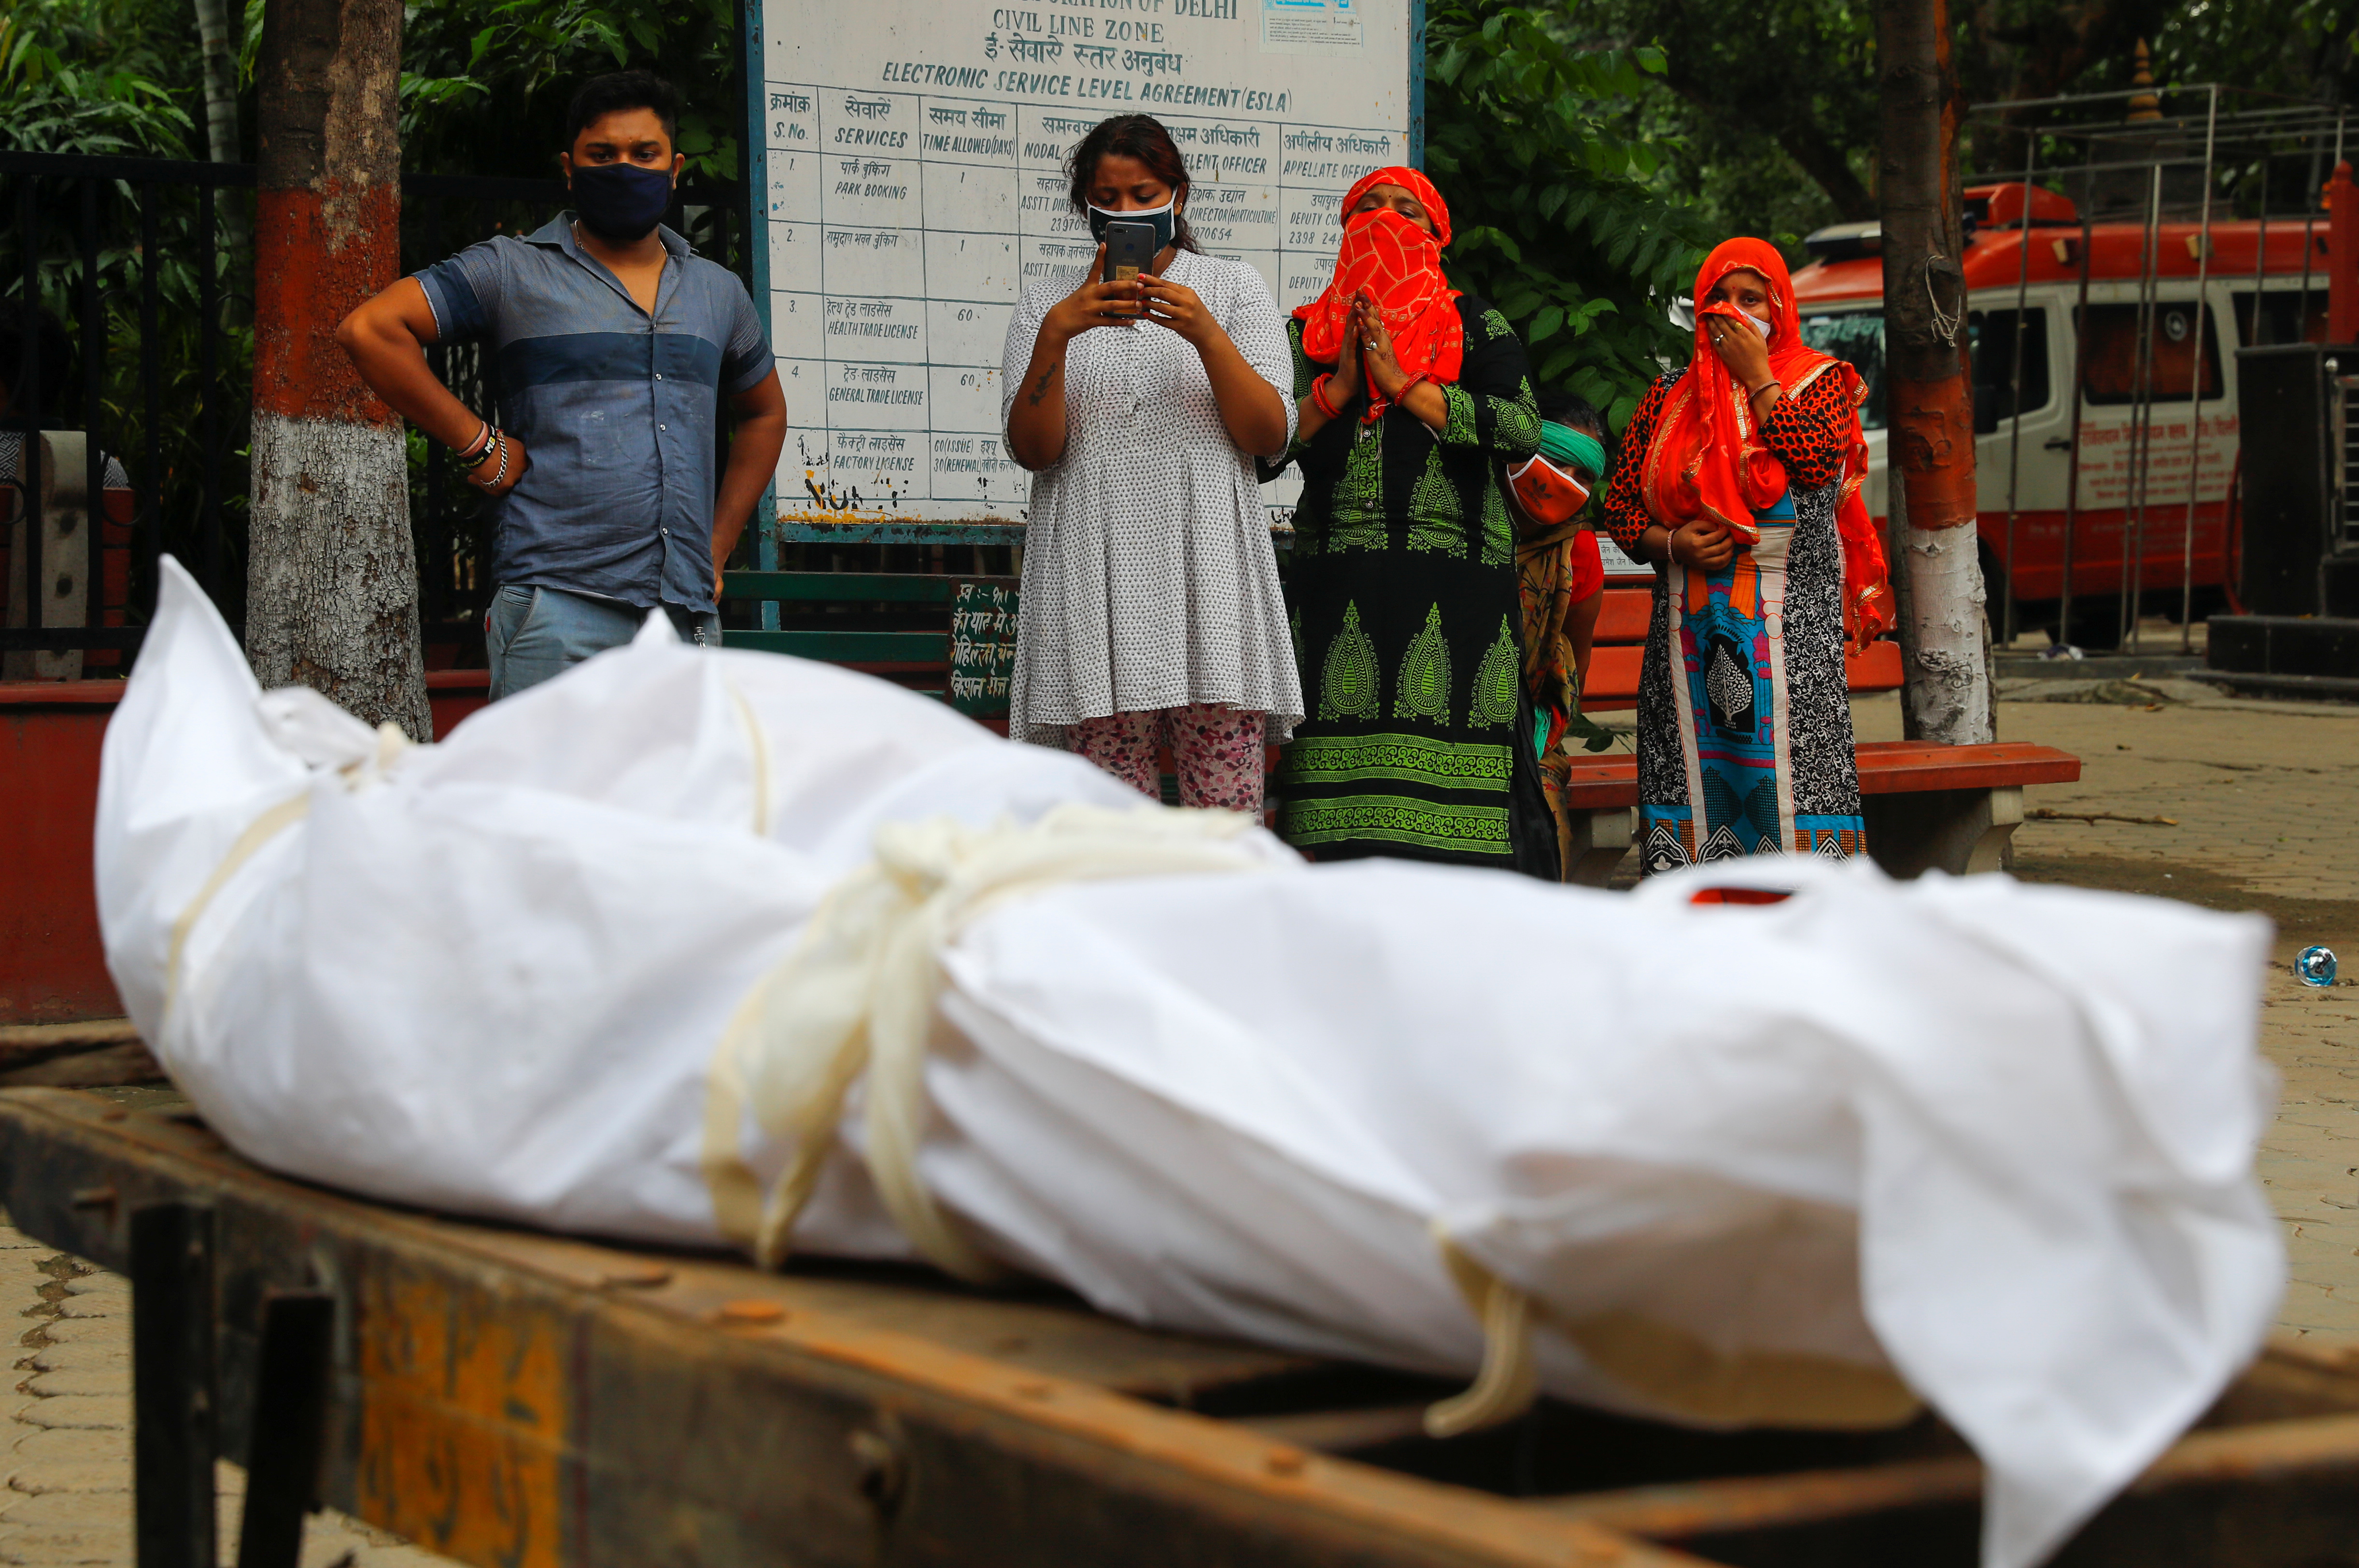 Relatives mourn as they stand next to the body of a man who died due to the coronavirus disease (COVID-19), at a crematorium, in New Delhi, India September 7, 2020. Photo: Reuters